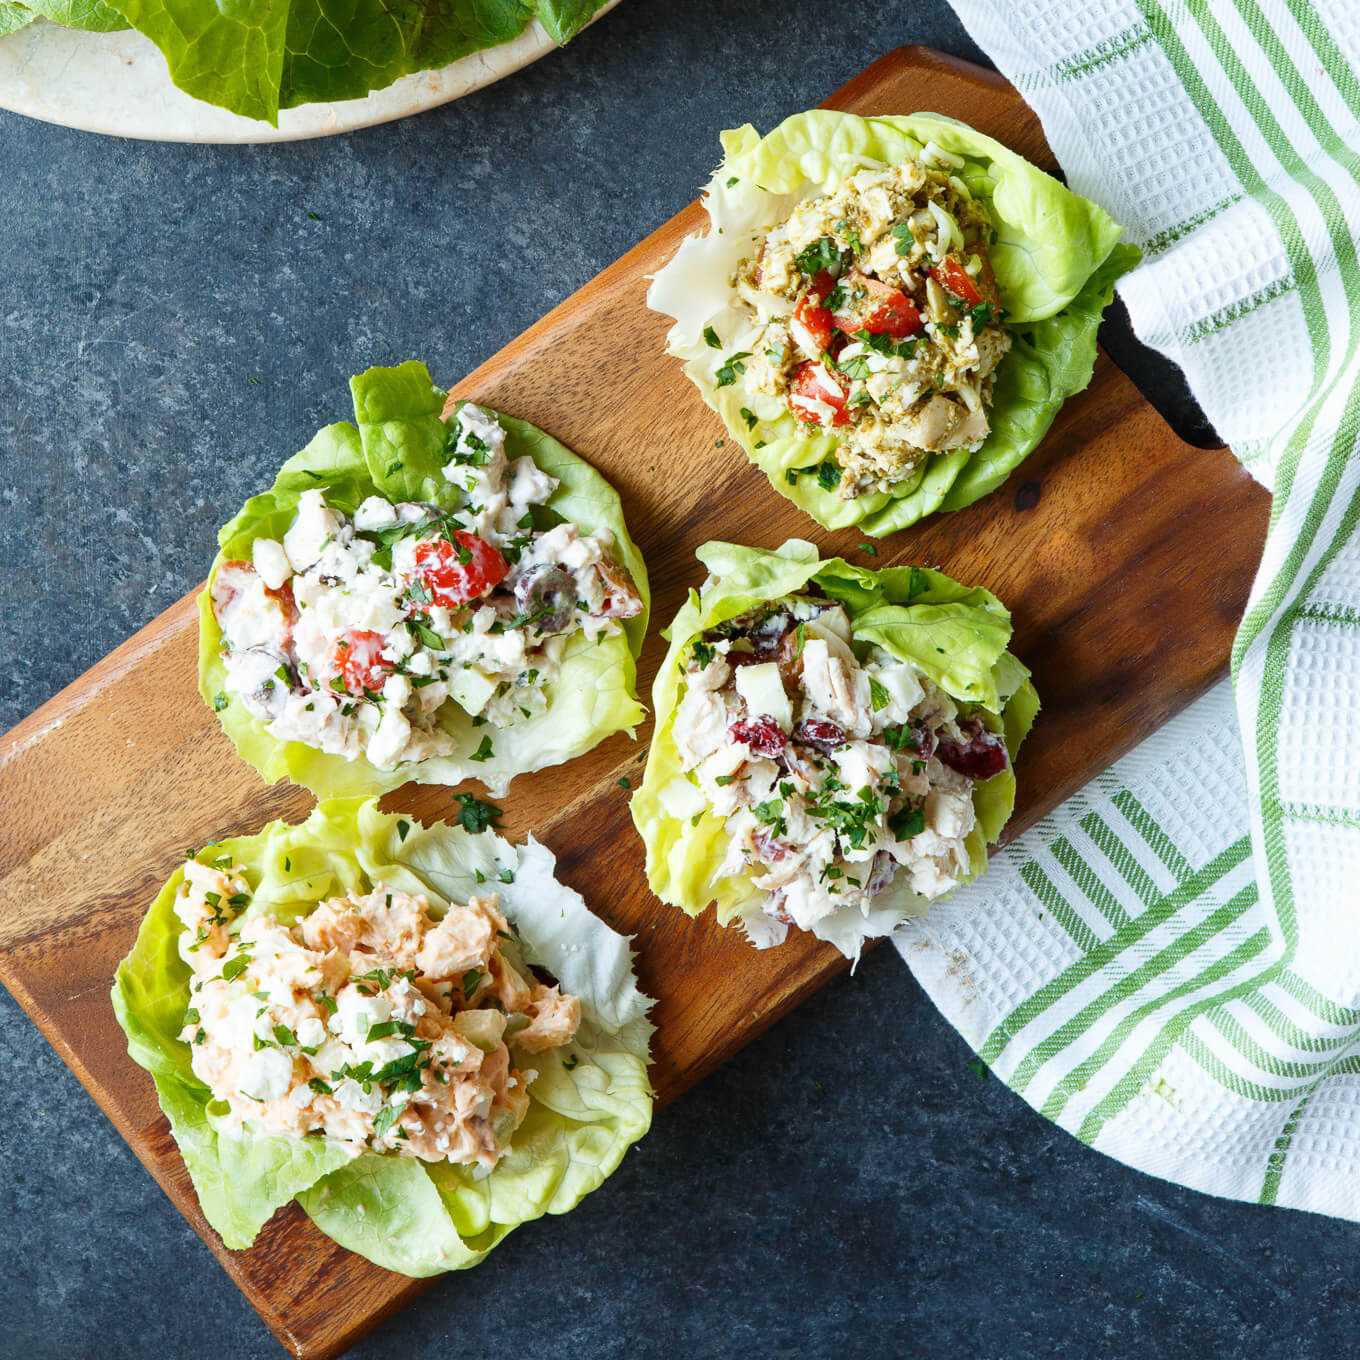 Chicken Salad Healthy  Four Healthy Chicken Salad Lettuce Wraps d Appetite